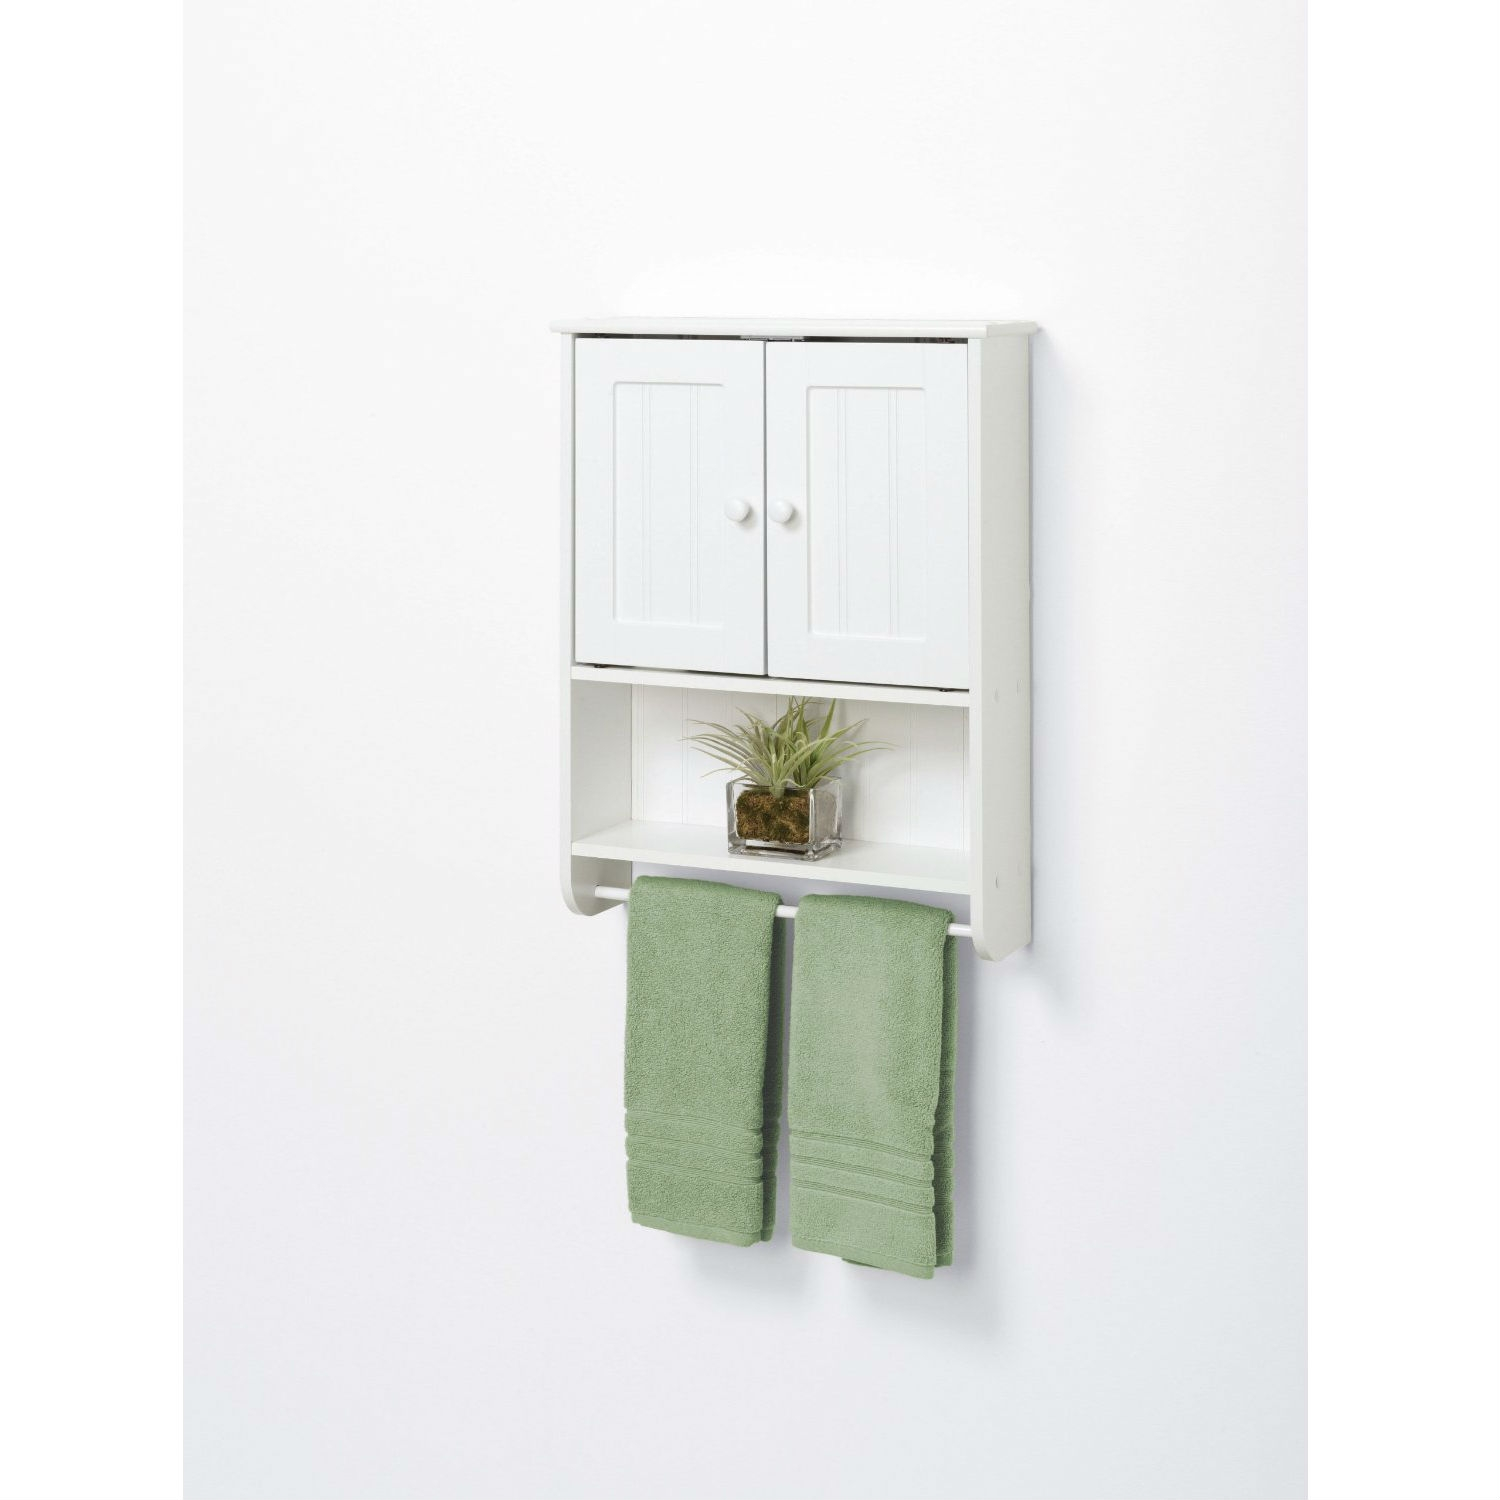 Retail Price $89.00  sc 1 st  FastFurnishings.com & Wall Mount Bathroom Cabinet with Towel Bar in White Finish ...